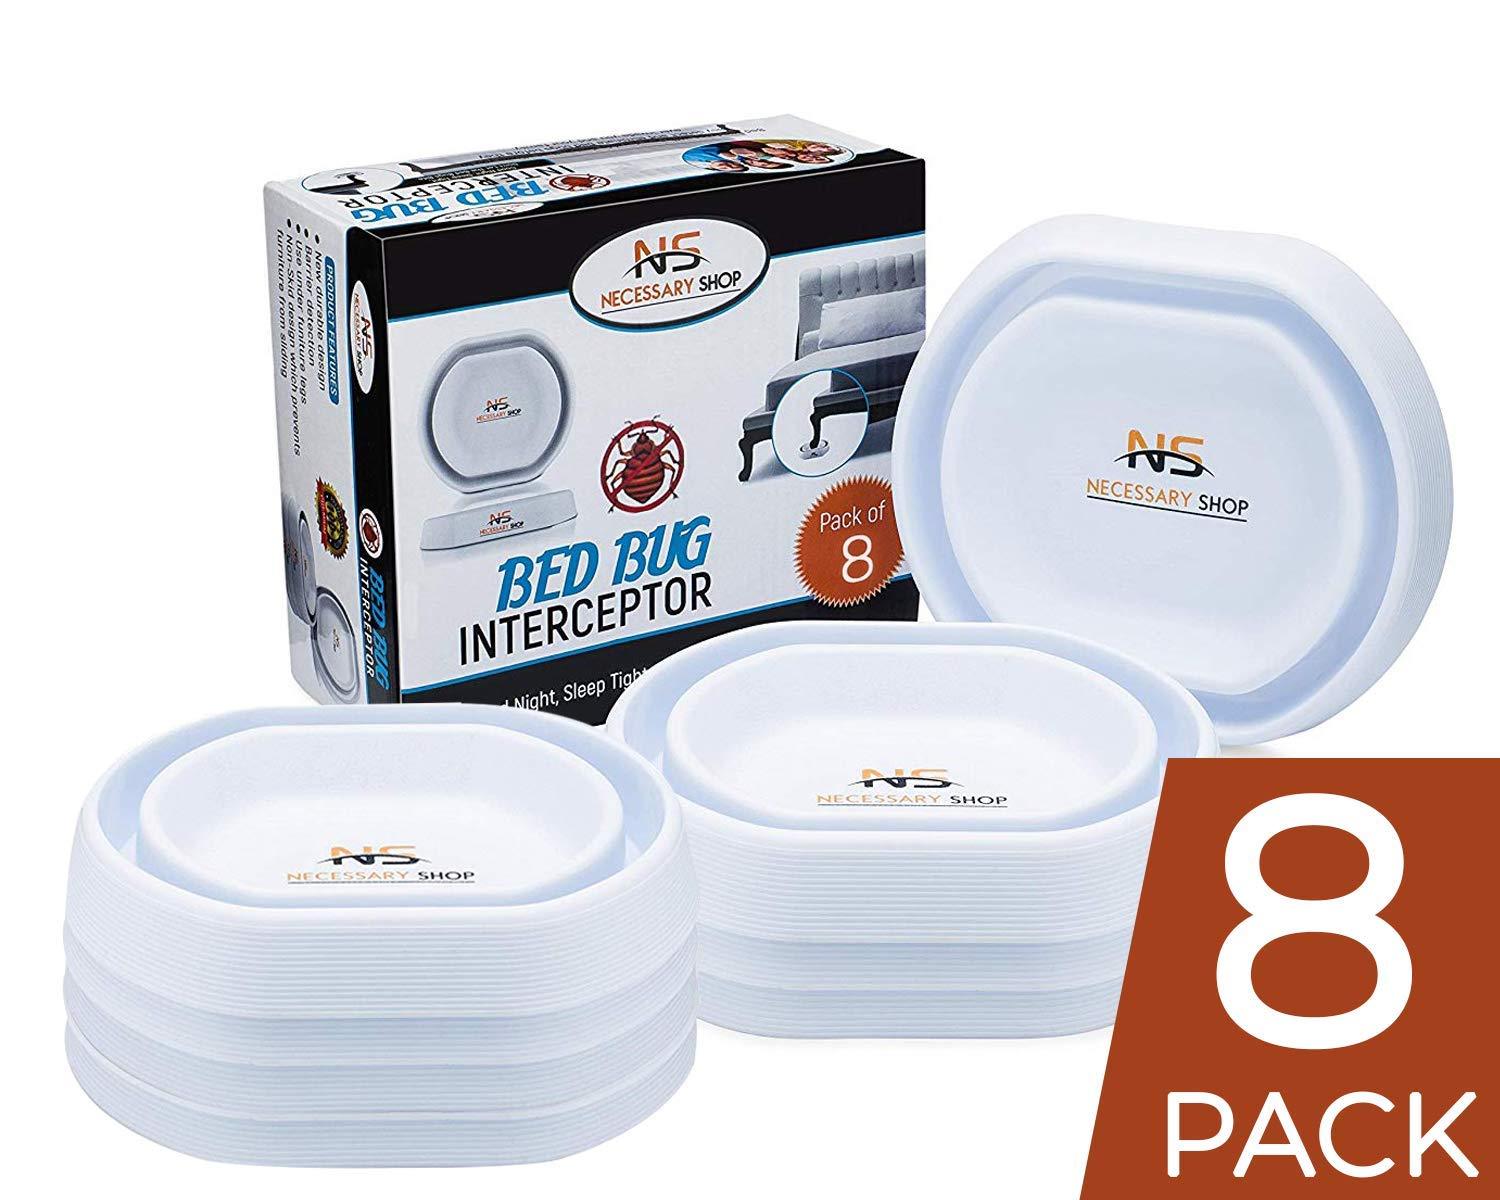 Necessary Shop Bed Bug Traps & Insect Control Protectors | Eco-Friendly Baby Safe New Durable Design of Bedbug Interceptors with Easy Detection & Prevention Against Bed Bugs Crawling Up Your Bed Legs by Necessary Shop